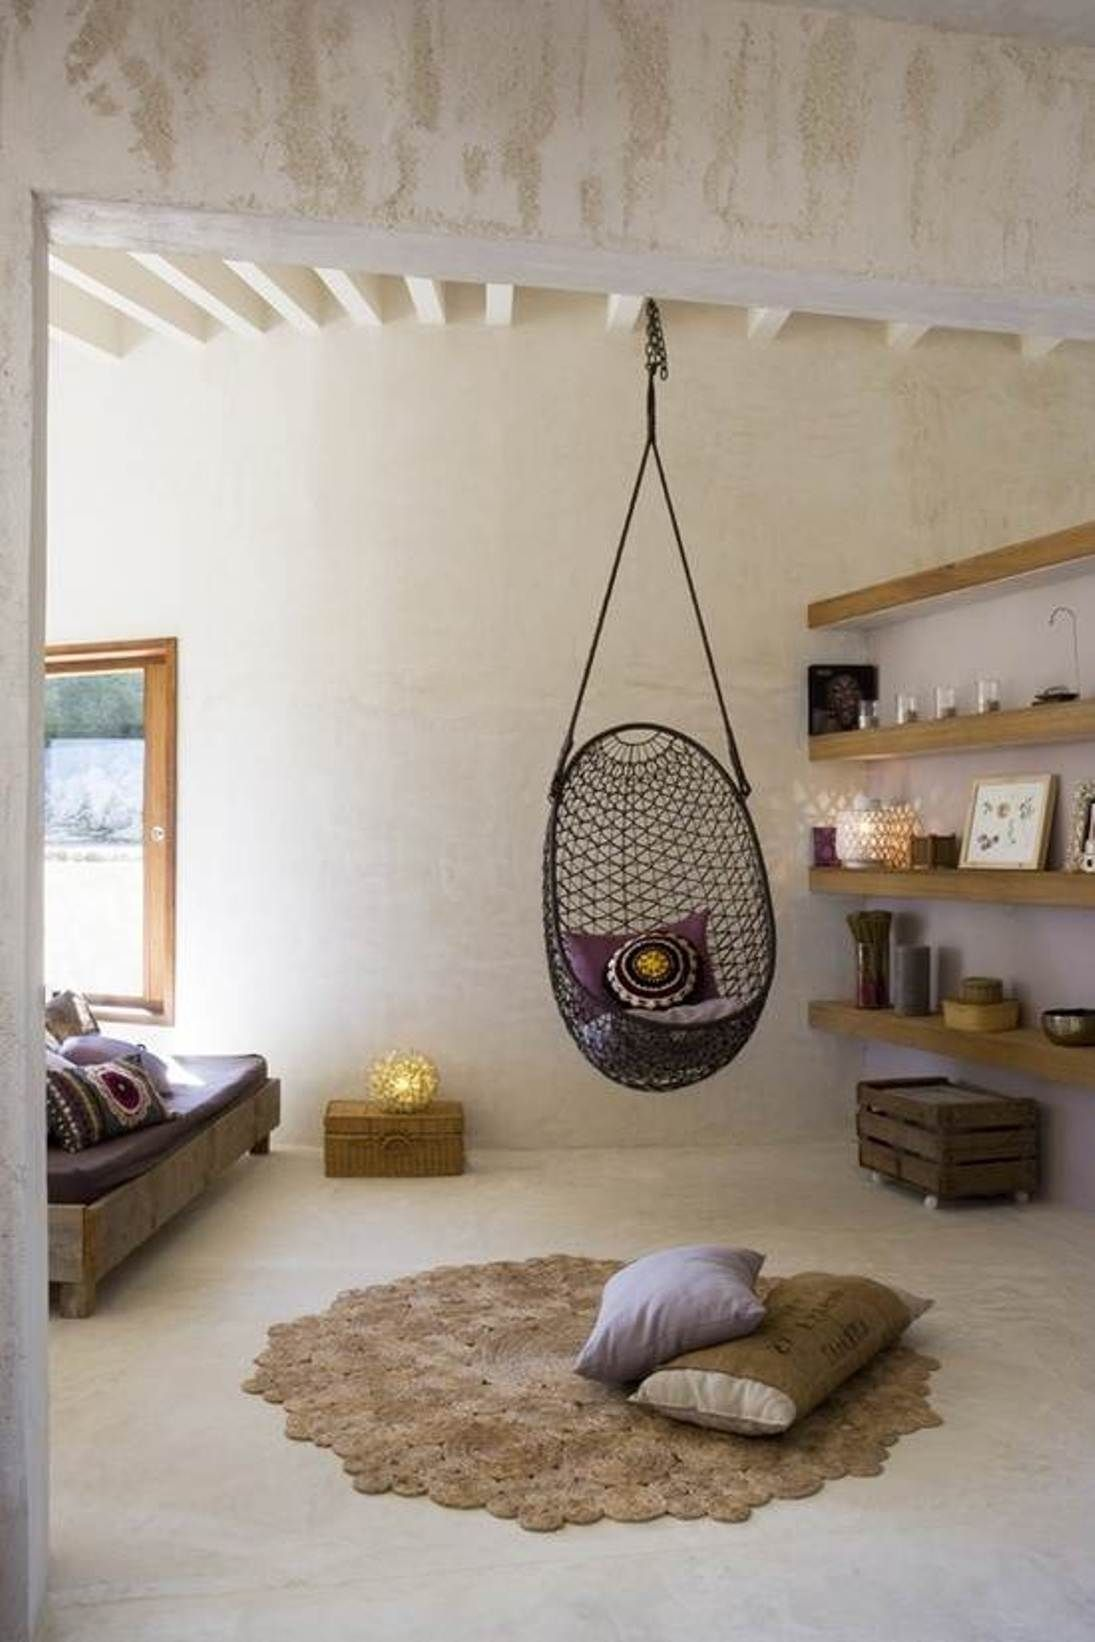 Delightful Captivating Grid Rattan Bedroom Hanging Chair Design. #HangingChairs  #Netnoot #Furniture Www.